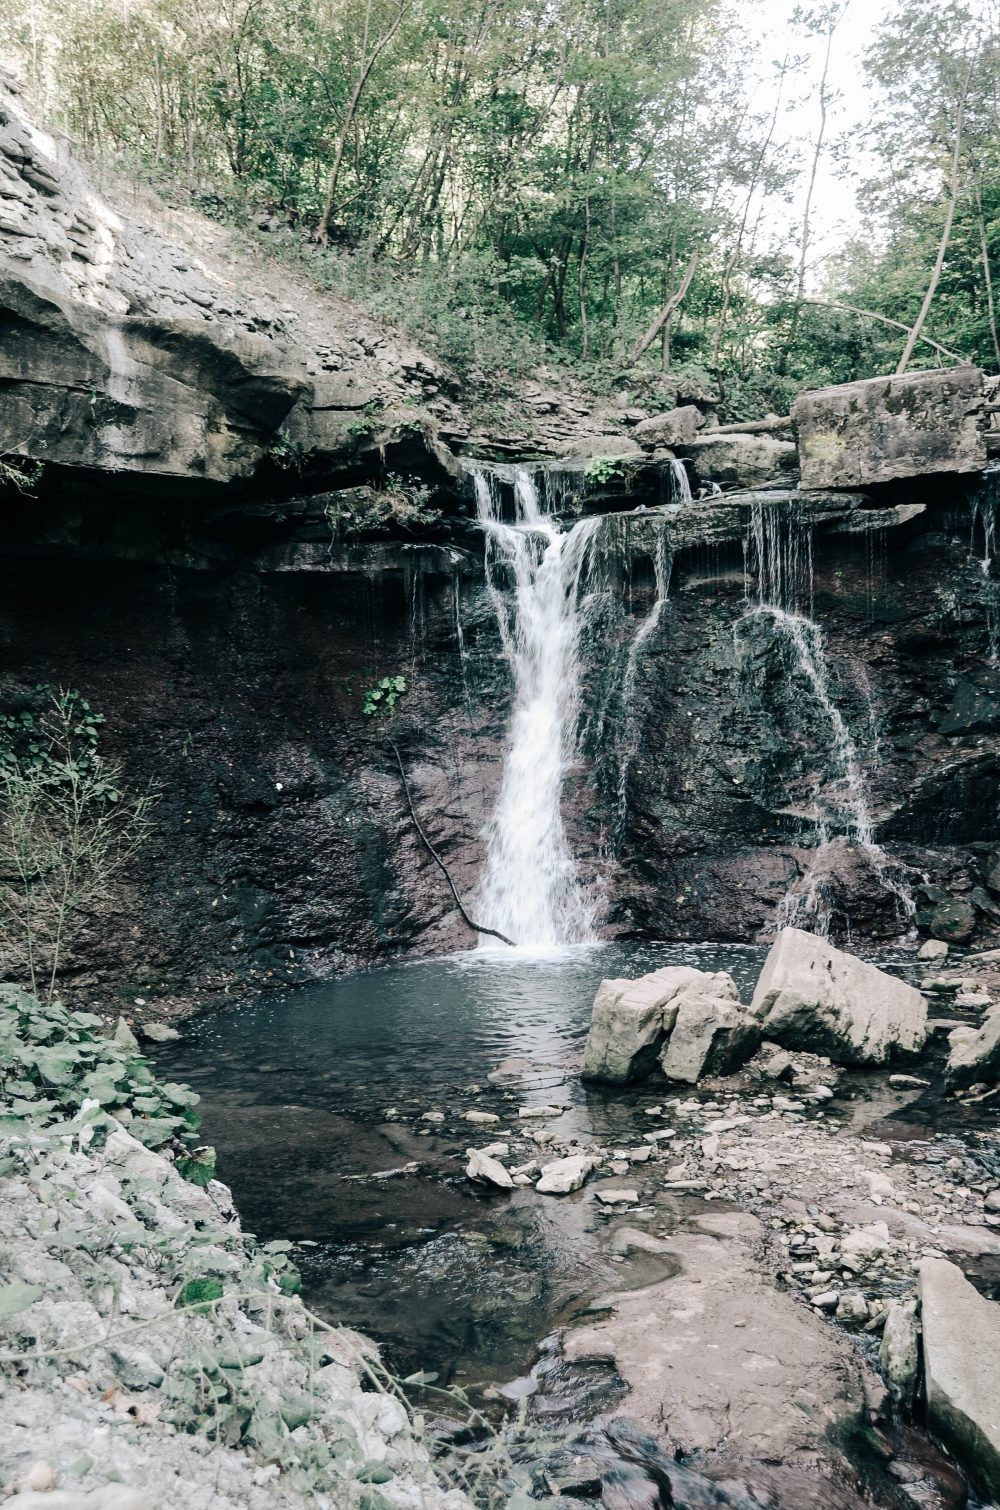 Waterfall Capital of the World   How to Travel to Hamilton, Ontario on a Budget   Places to See and Things to Do while saving Money